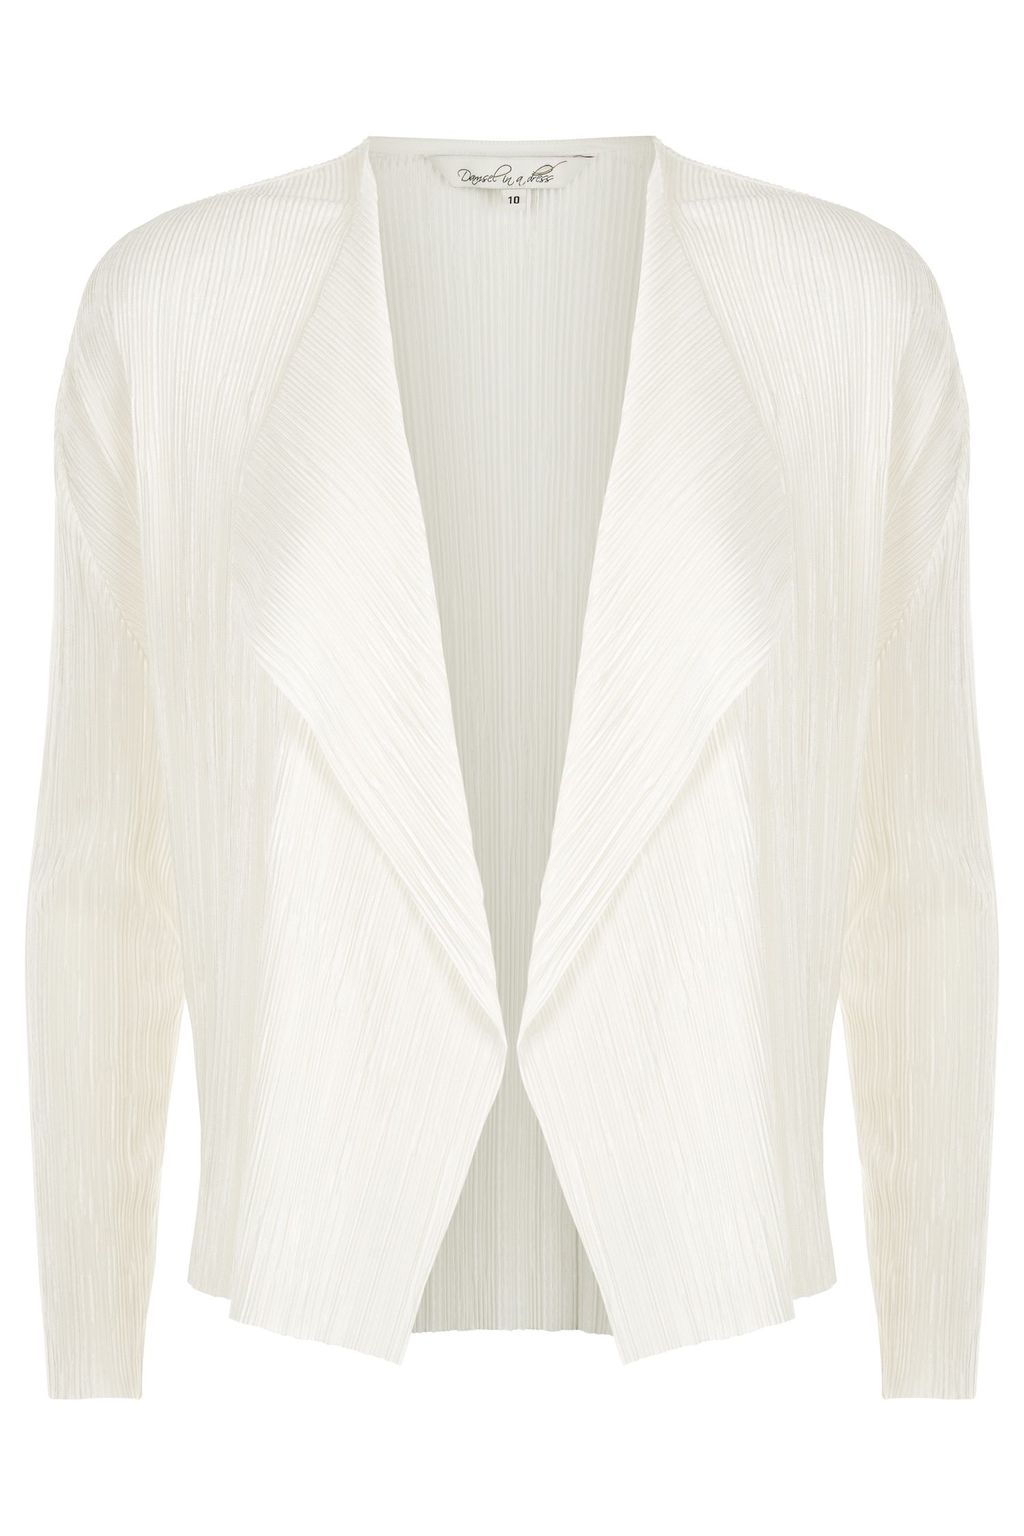 Issy Jacket, Ivory - pattern: plain; style: single breasted blazer; collar: round collar/collarless; predominant colour: white; length: standard; fit: tailored/fitted; fibres: polyester/polyamide - 100%; sleeve length: 3/4 length; sleeve style: standard; collar break: medium; pattern type: fabric; texture group: woven light midweight; occasions: creative work; season: s/s 2016